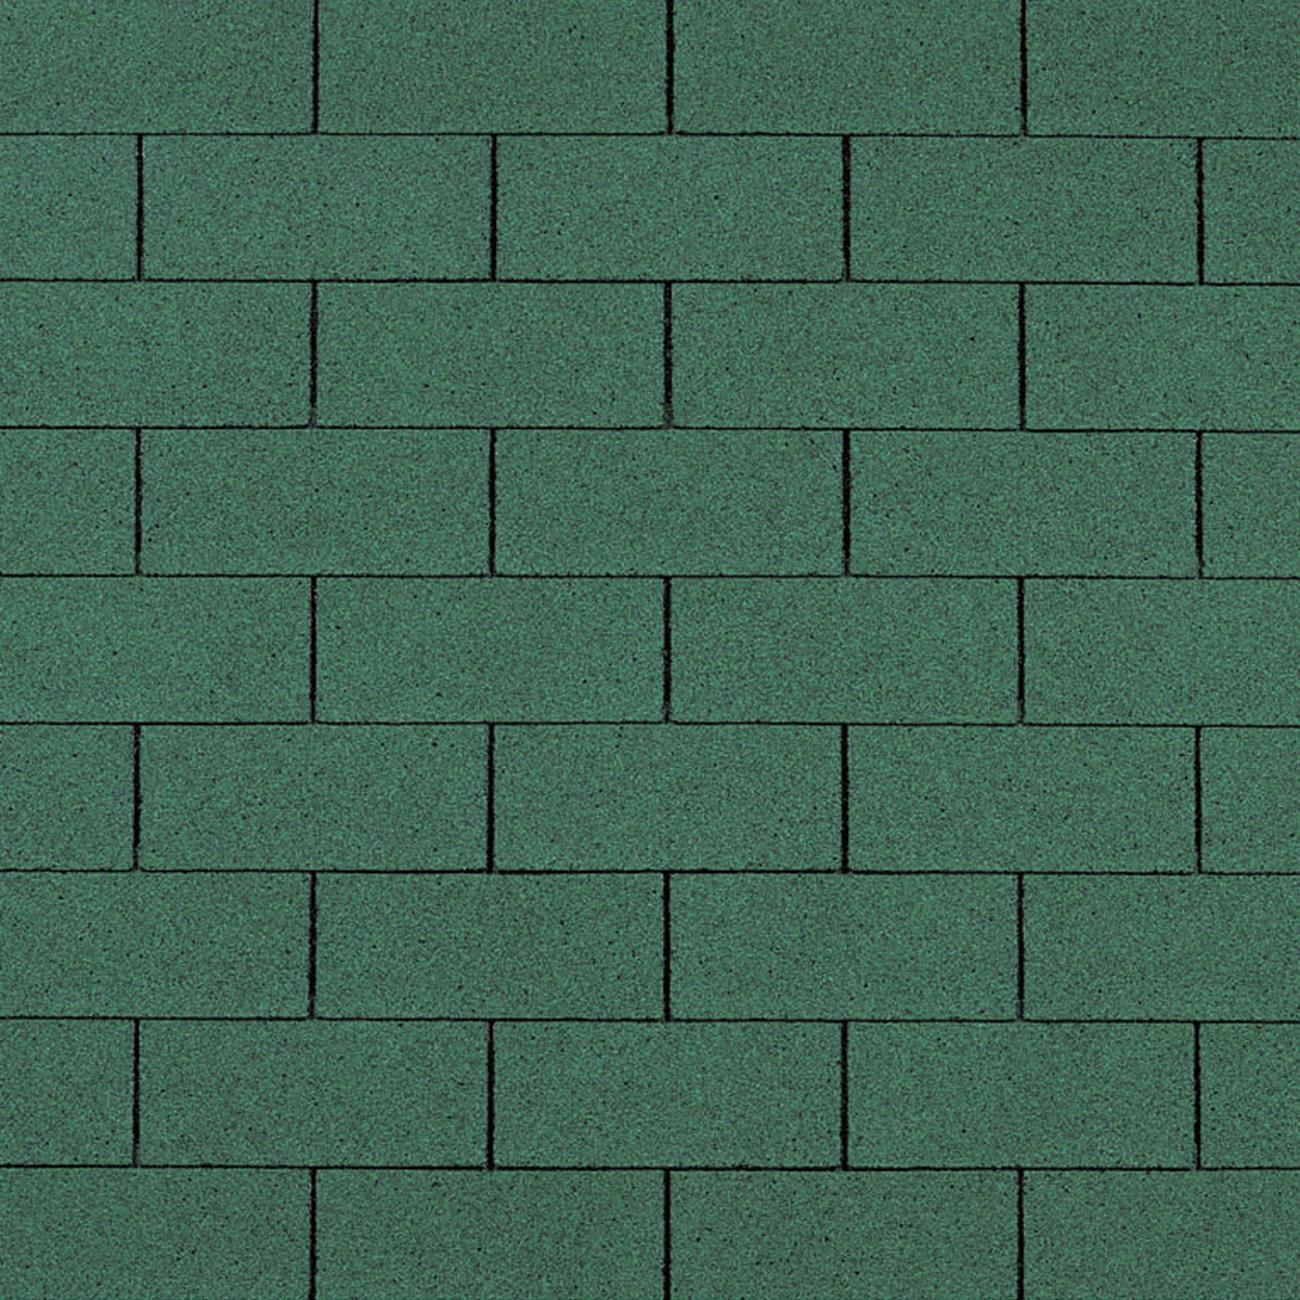 TEJA ASFALTICA CELTIC TOP SHINGLE GREEN 3.1 MT2